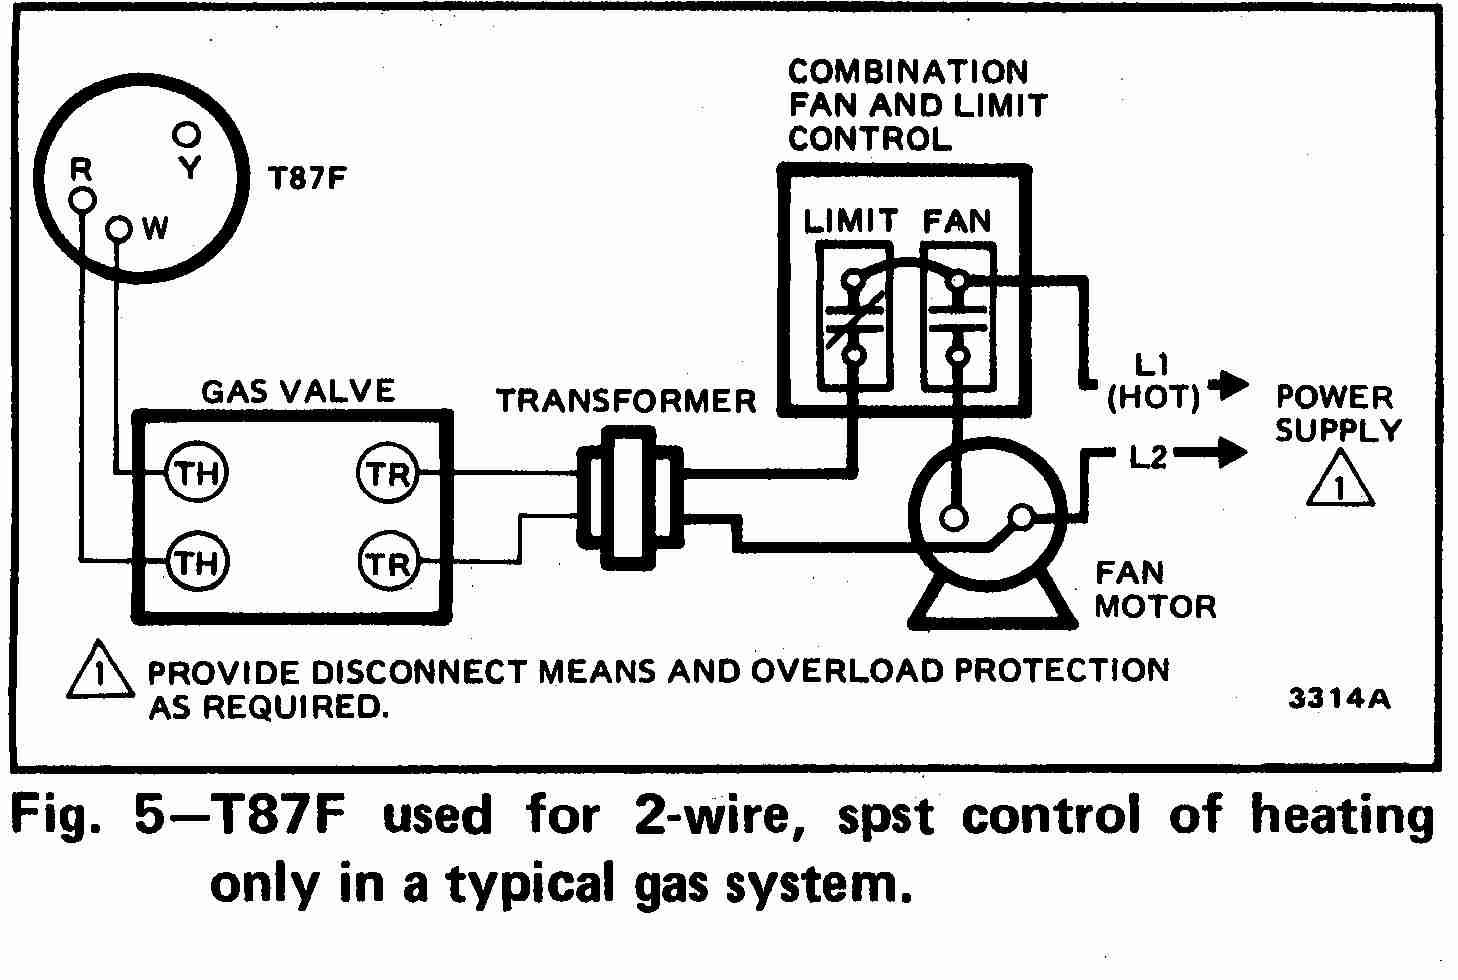 hight resolution of room thermostat wiring diagrams for hvac systems hive heating control wiring diagram heating control wiring diagram